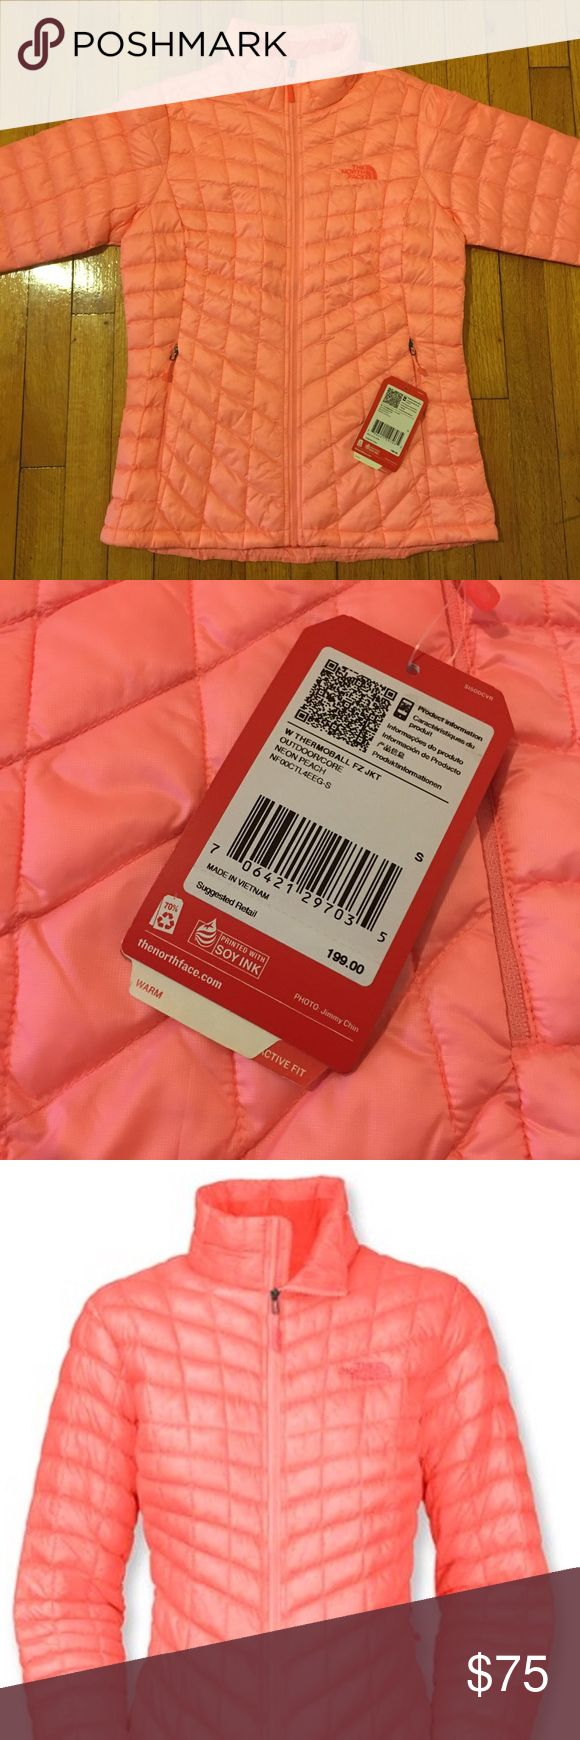 North Face Thermoball Jacket Neon Peach - Rtl $199 Women's North Face Thermoball Full Zip Jacket Neon Peach - Small - Retails $199 - New w/ Tags North Face Jackets & Coats Puffers